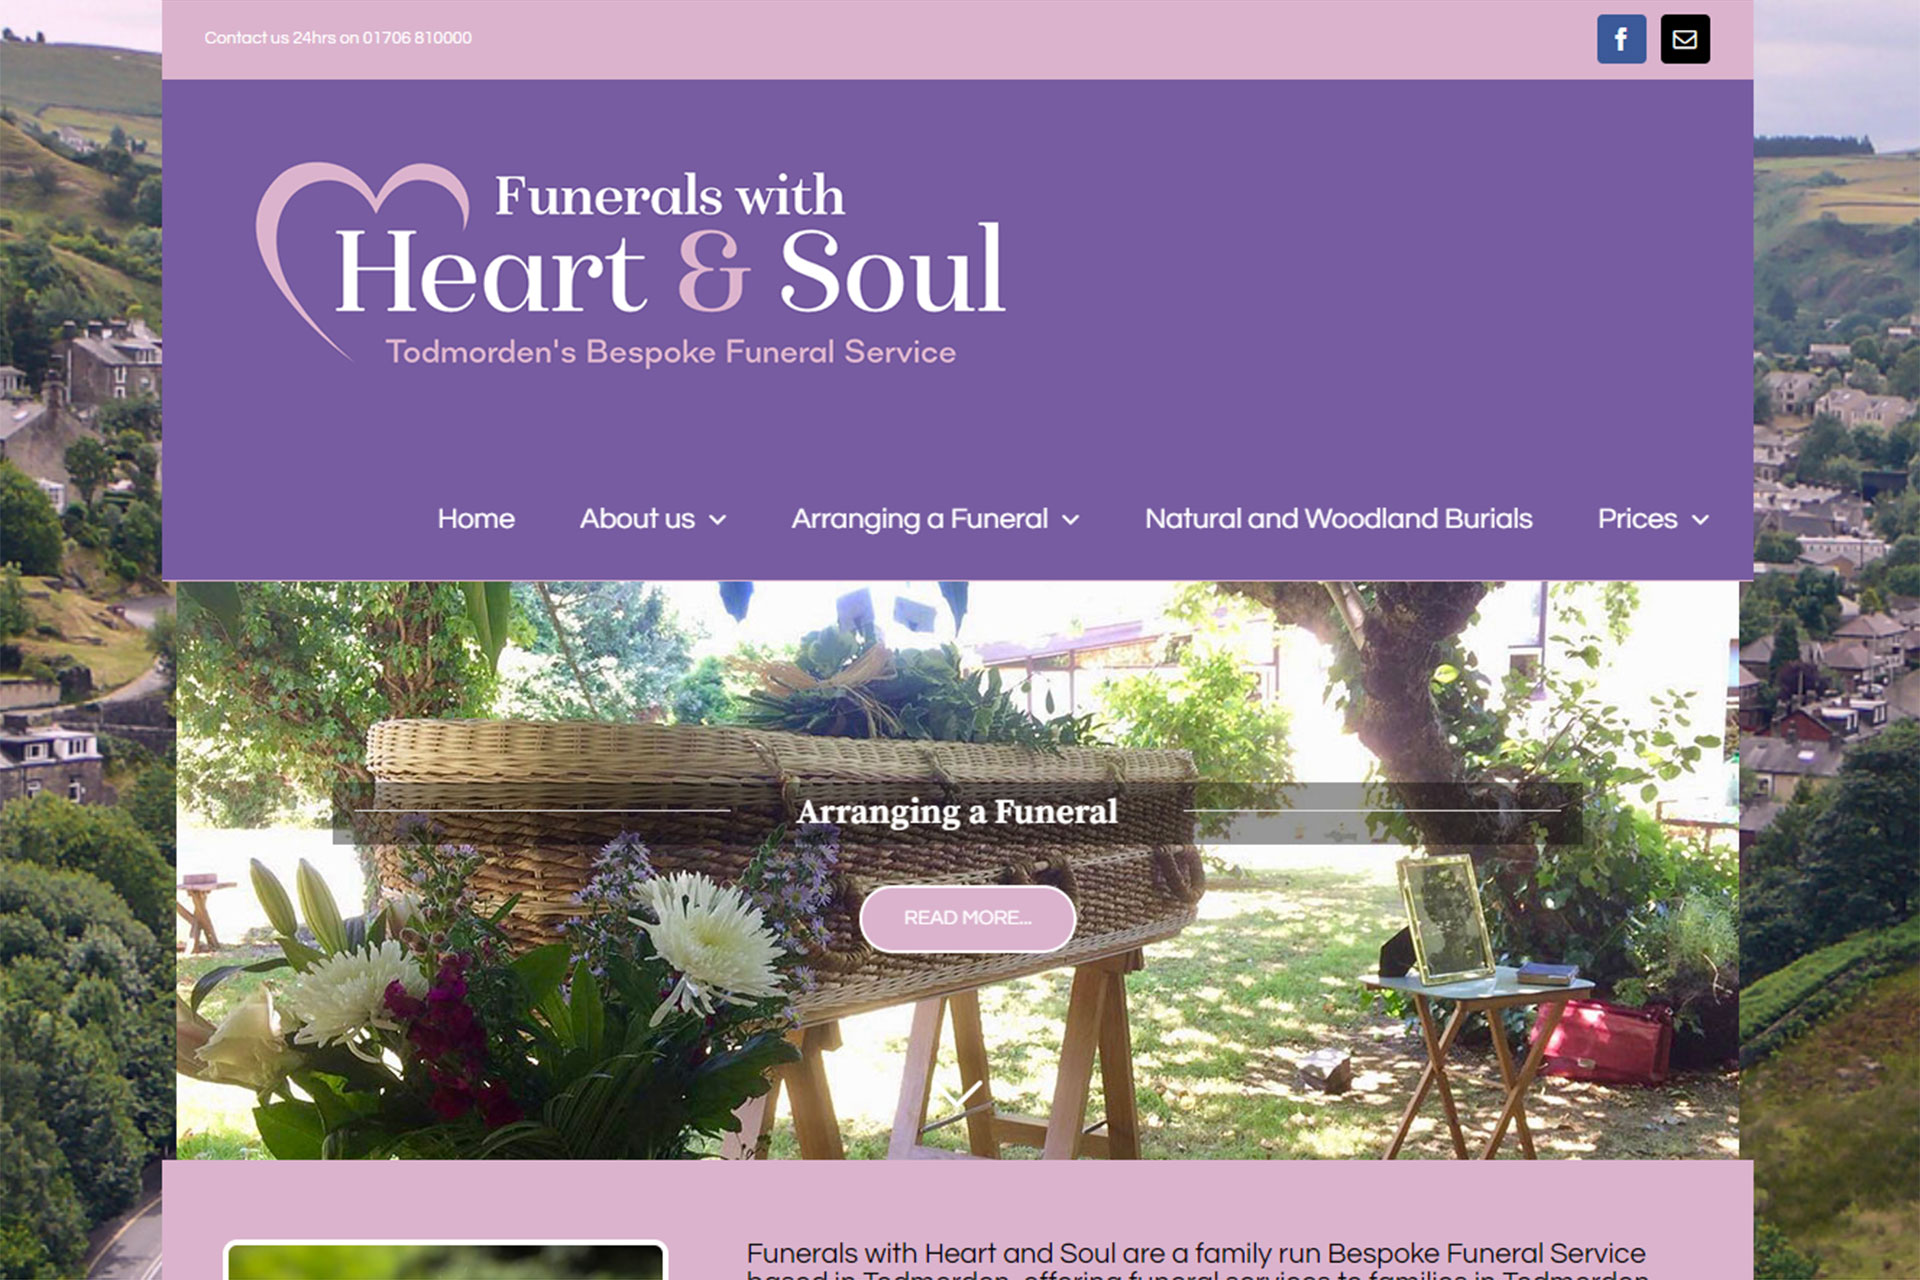 Screenshot of the Funerals with Heart and Soul home page designed by Picture Engine